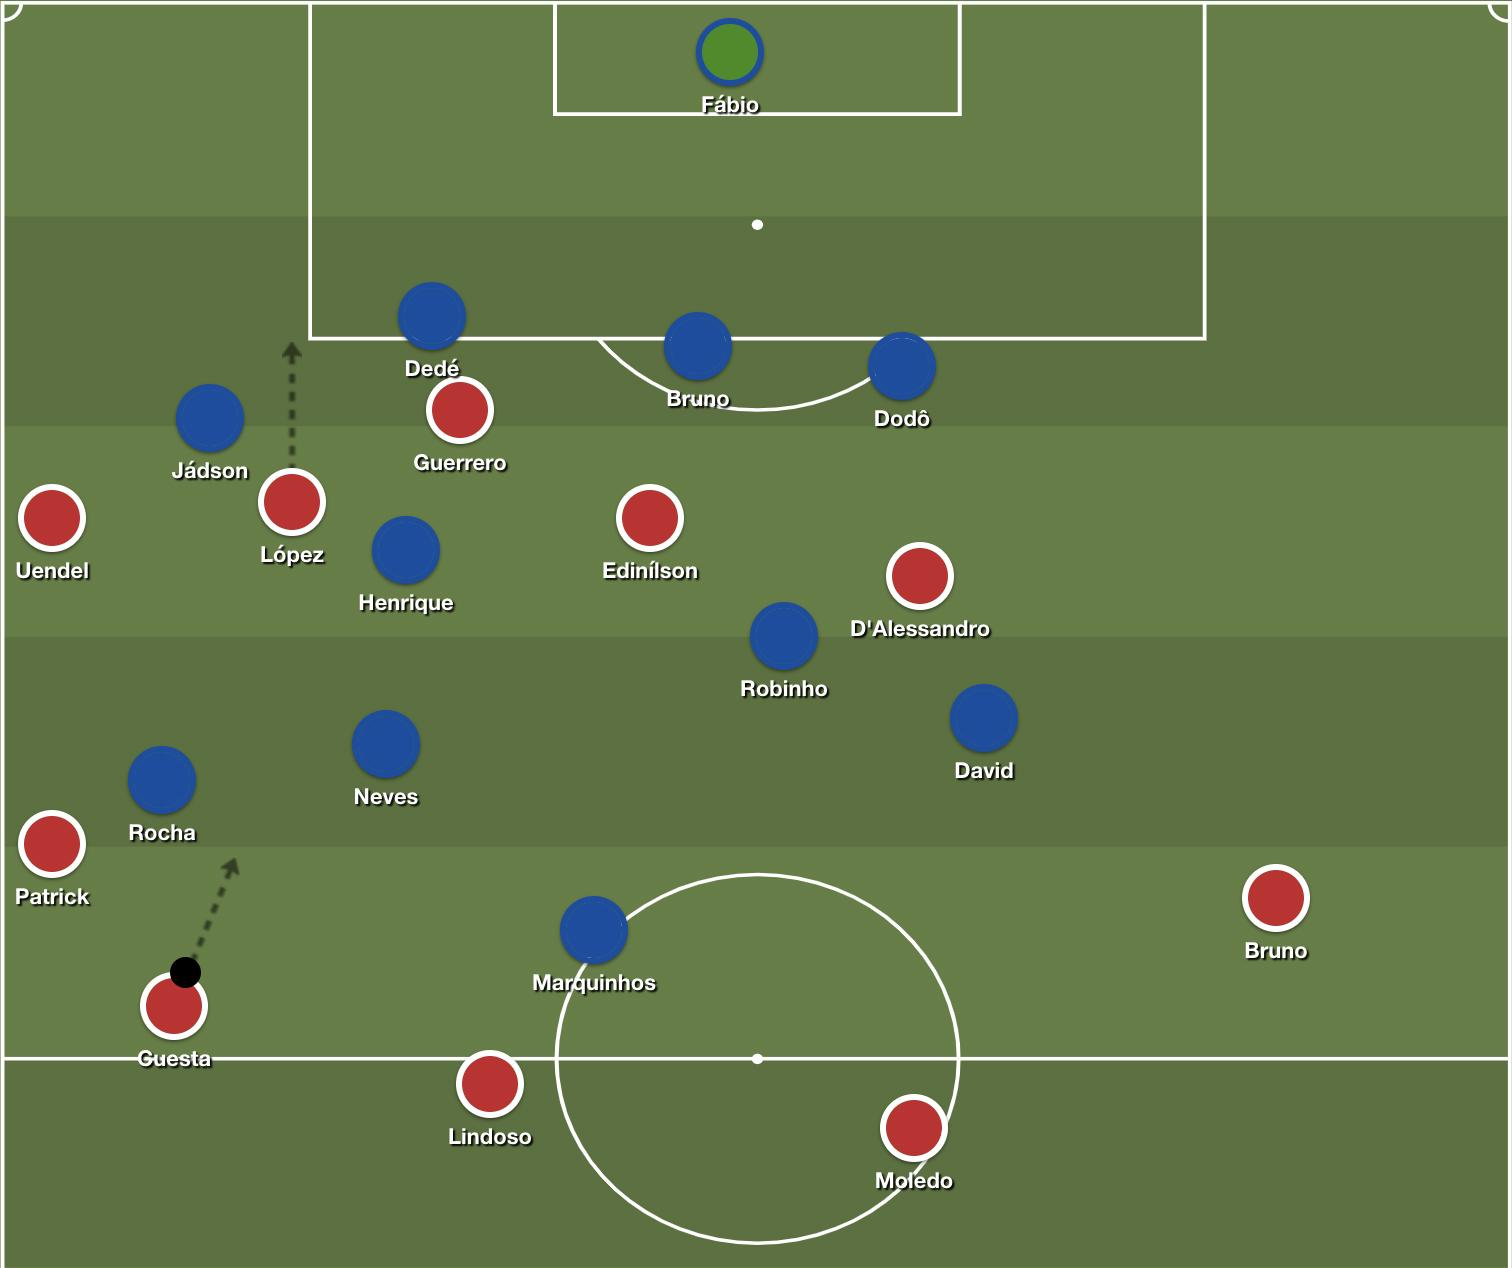 Internacional's stretched attacking setup, playing off of long balls down the left side.